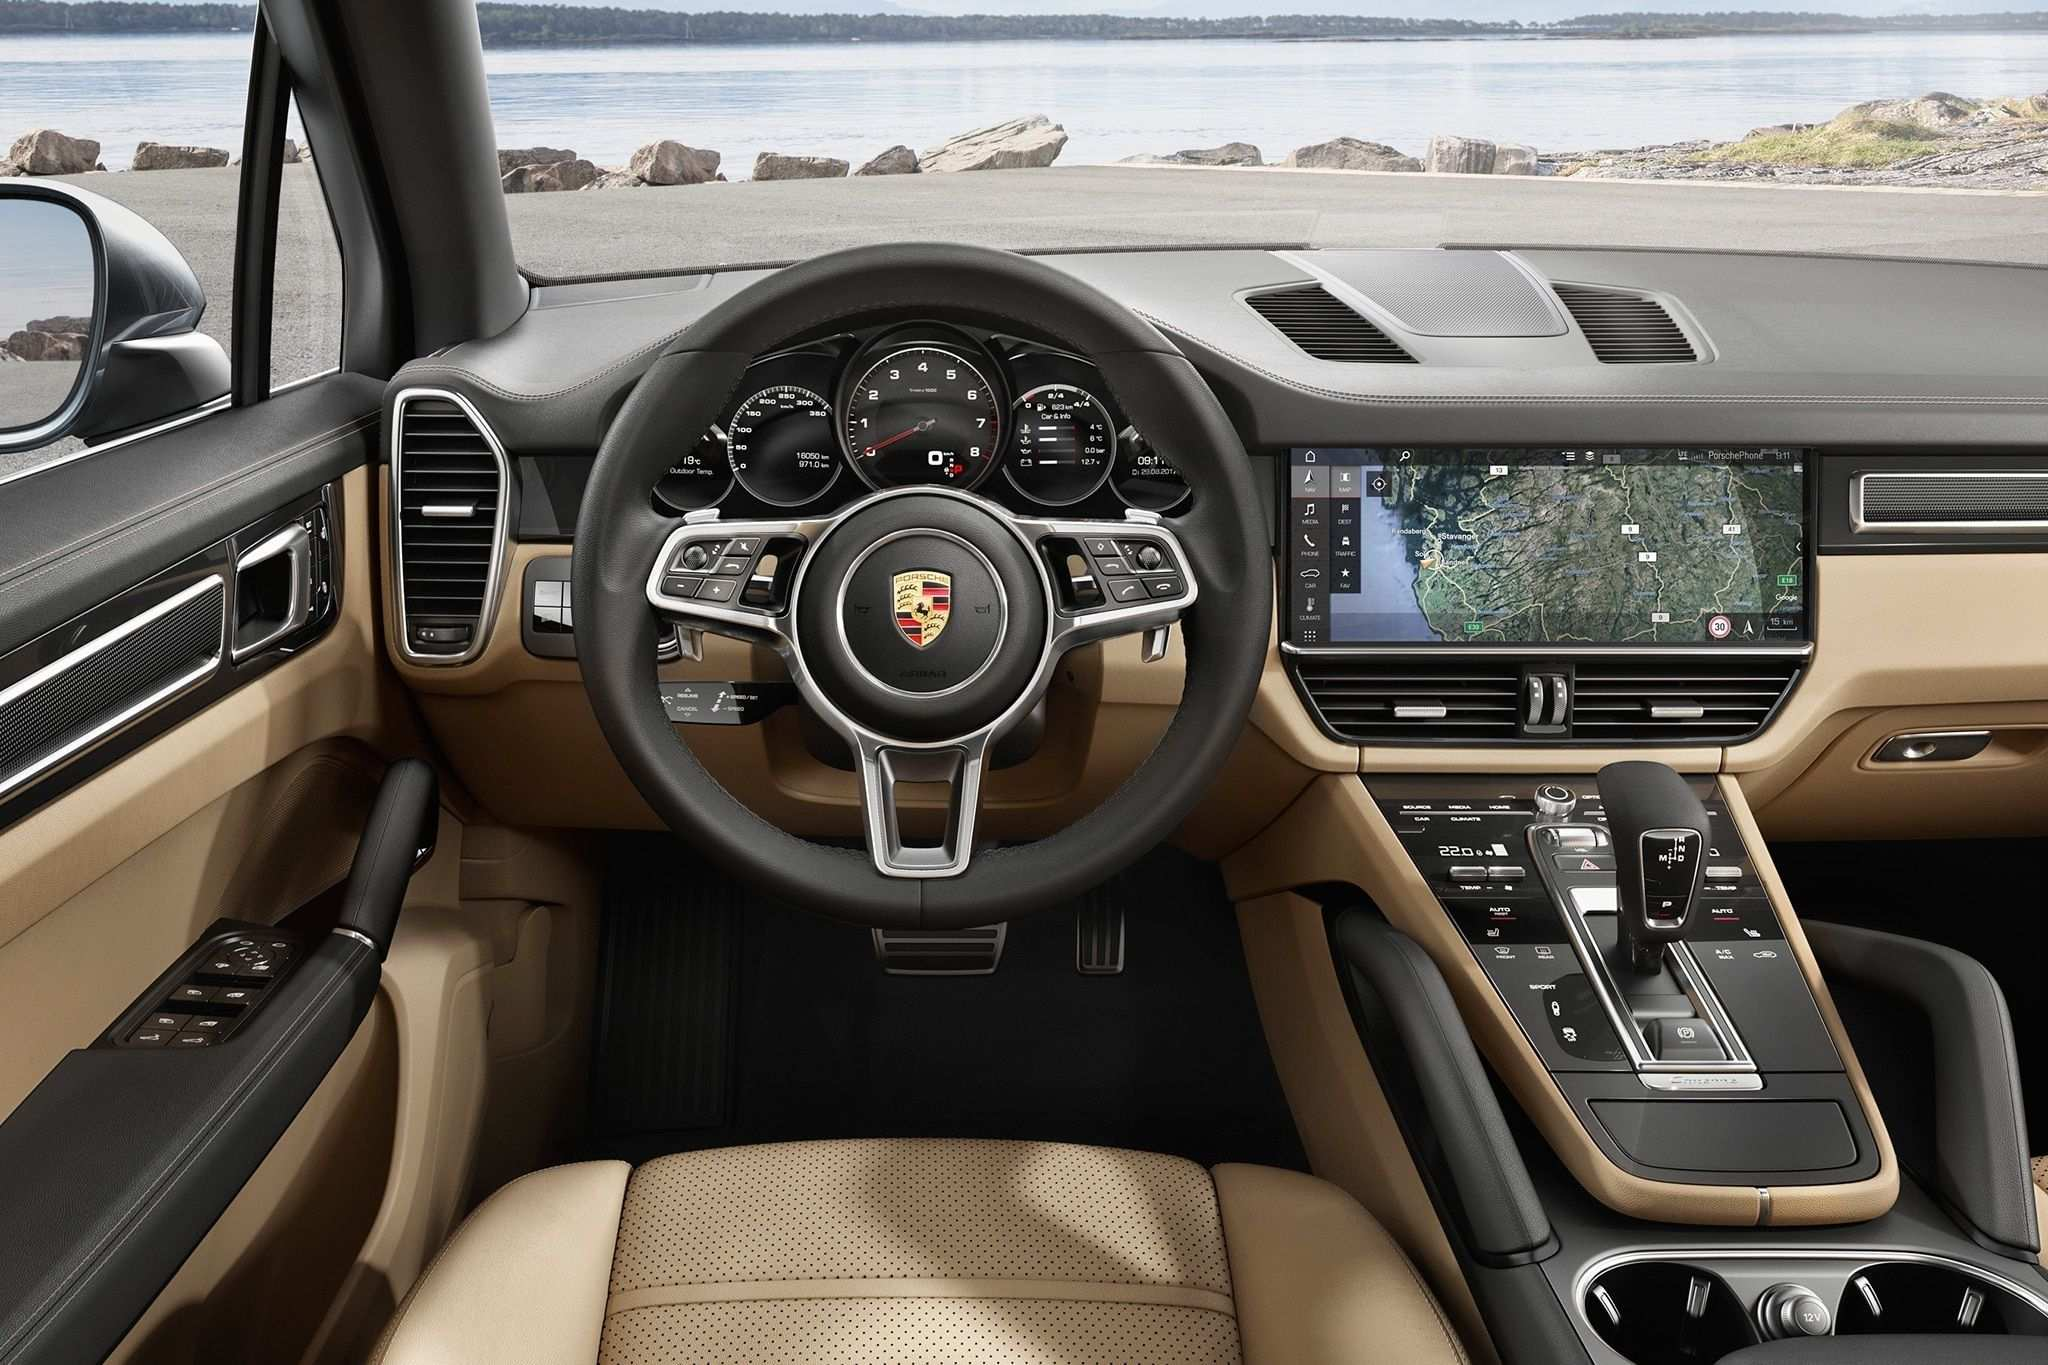 46 Best 2019 Porsche Macan Interior Rumors